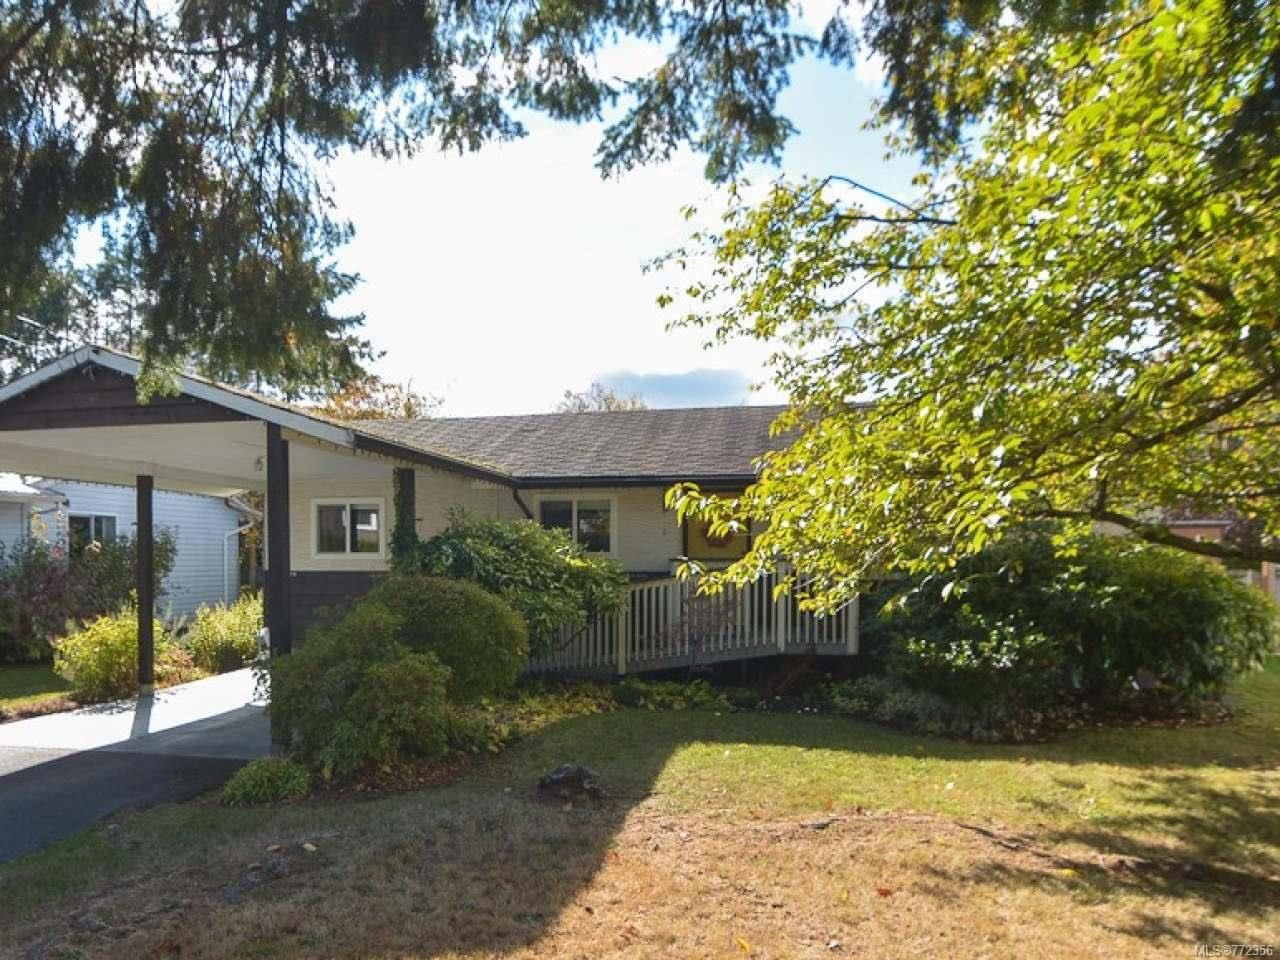 Main Photo: 2279 WILLEMAR Avenue in COURTENAY: CV Courtenay City House for sale (Comox Valley)  : MLS®# 772356